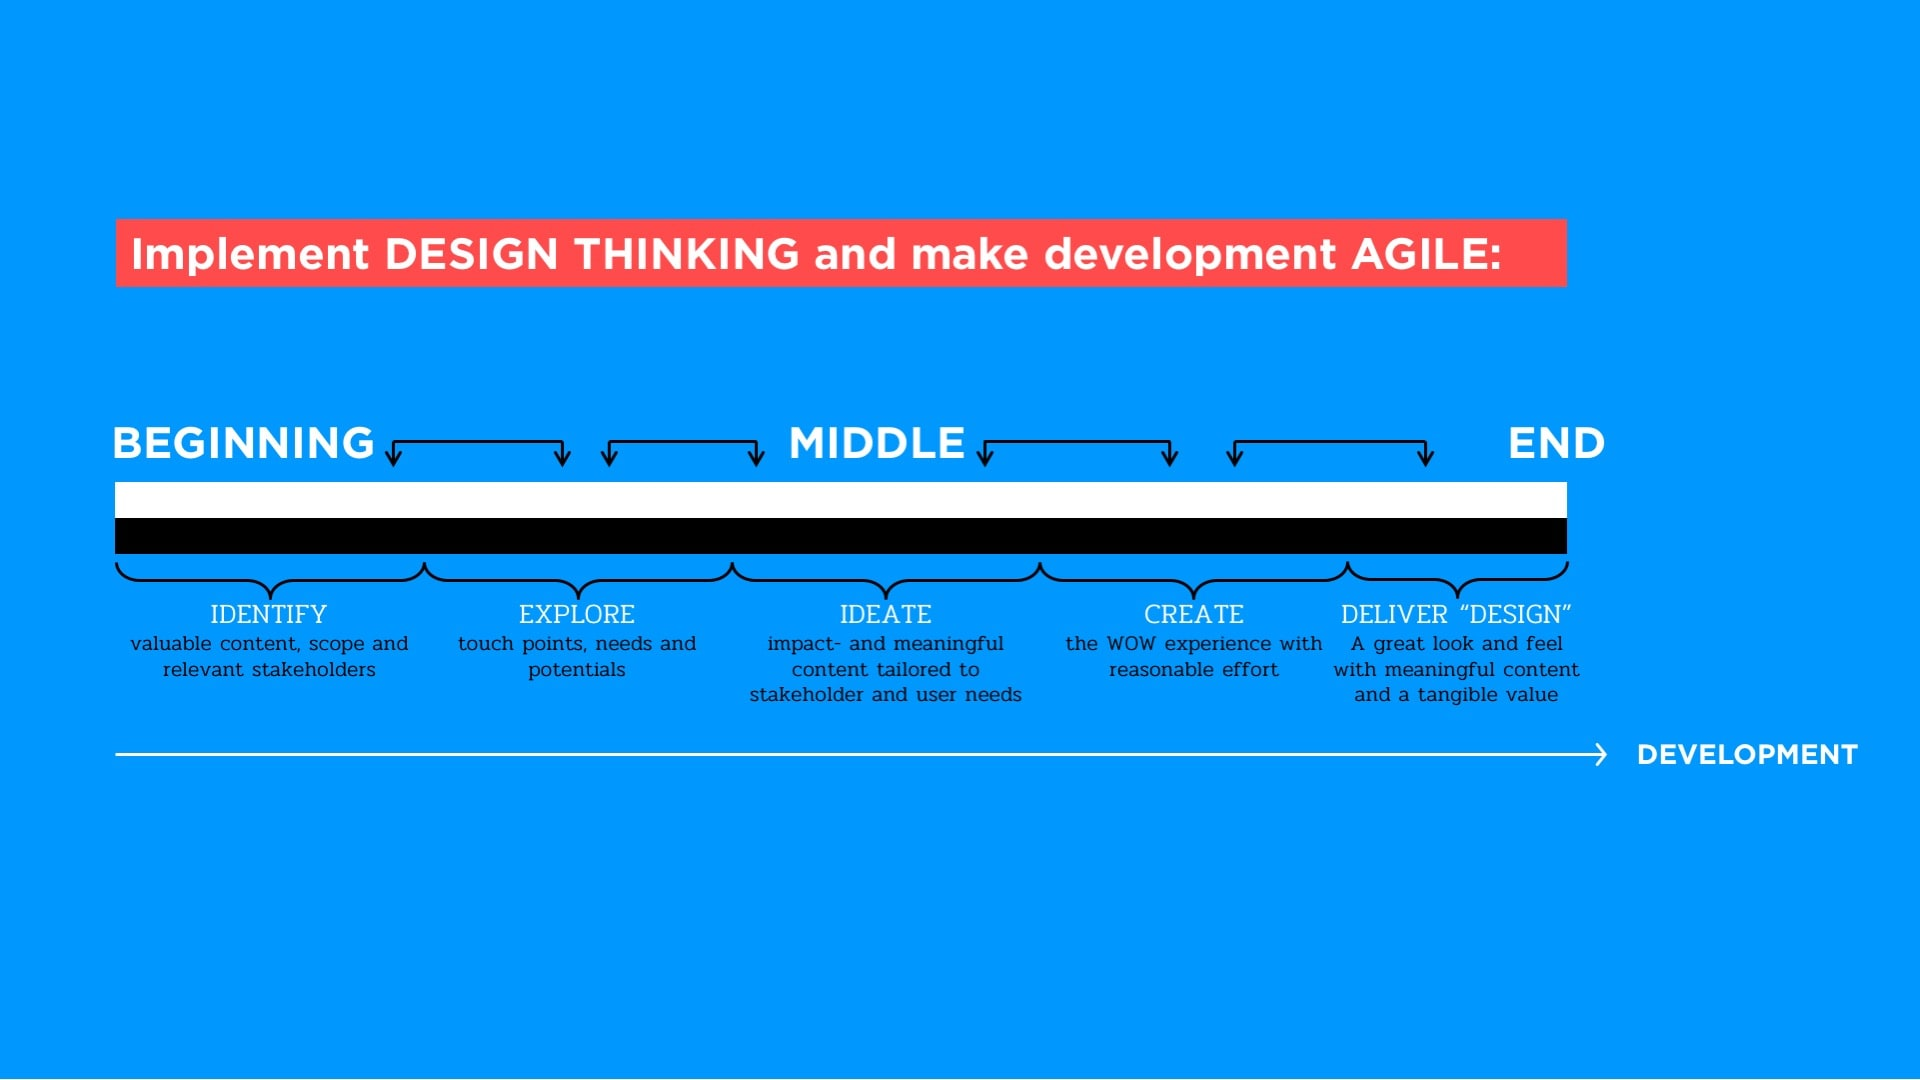 Agile development and design thinking